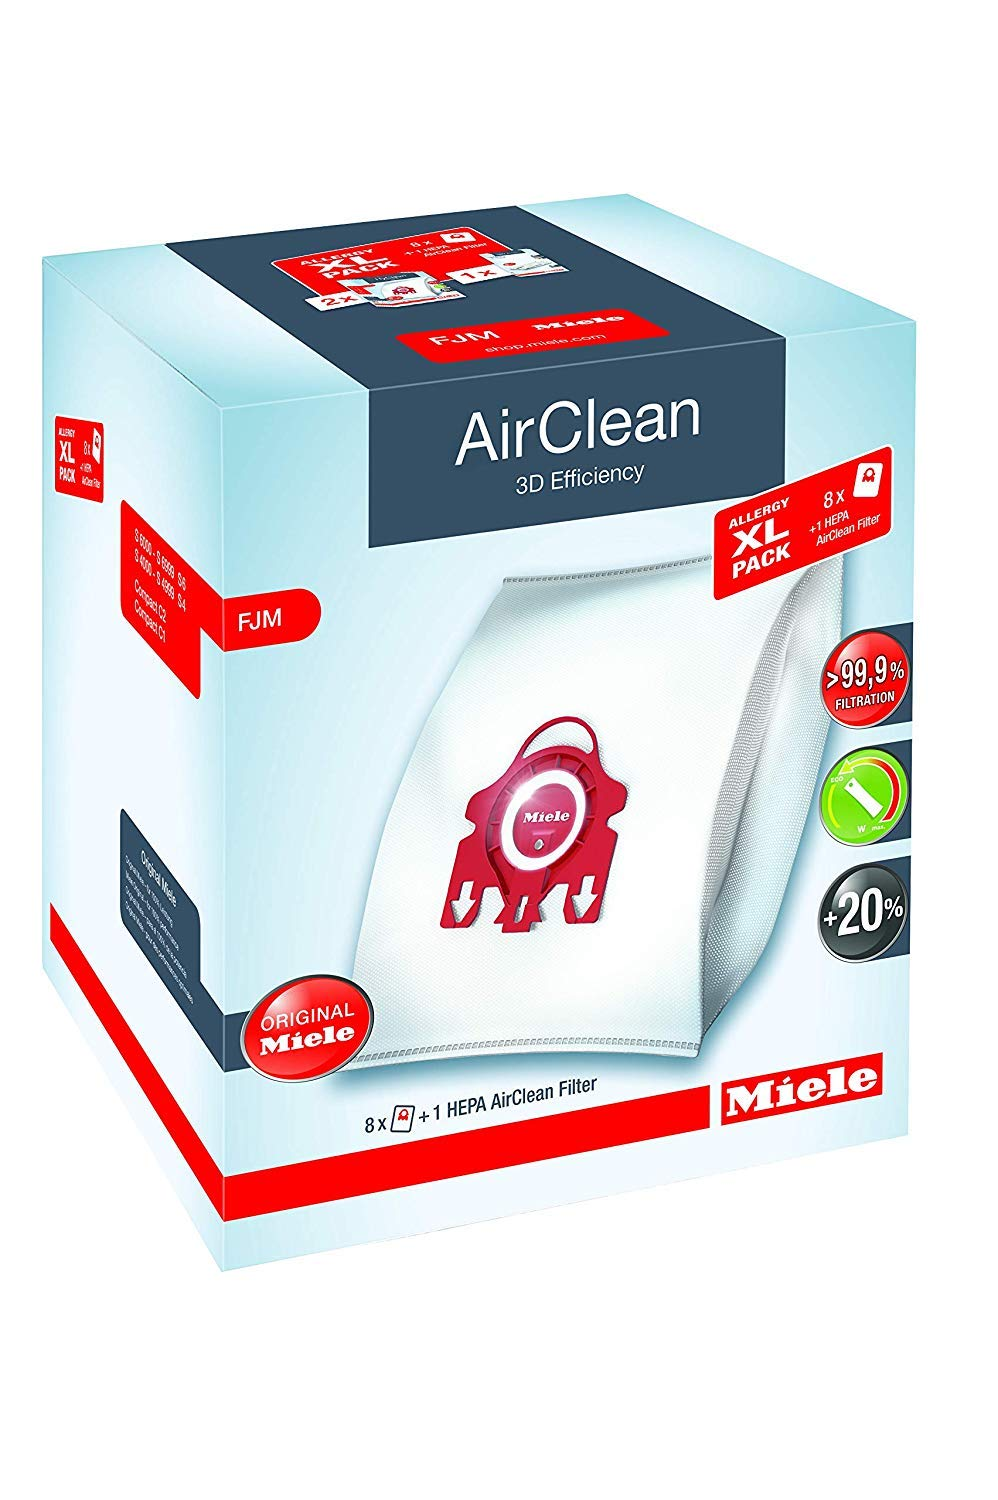 Miele AirClean 3D Efficiency Dust Bag, Type FJM, Allergy XL-Pack, 8 Bags, 2 Pre-Motor Filters, and 1 HEPA Filter